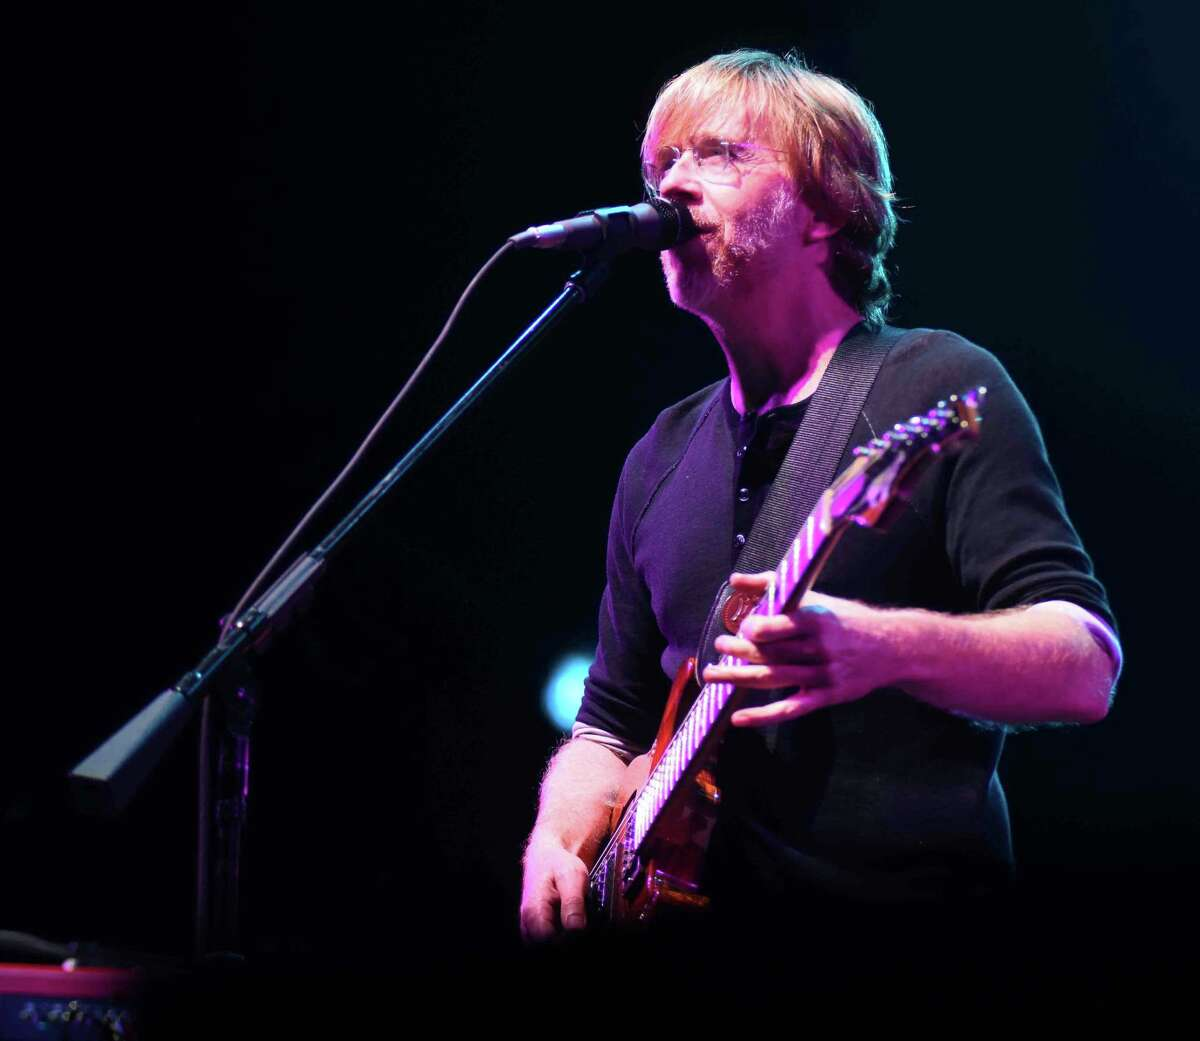 The Vermont-based, four-man jam band Phish played at the Xfinity Theater in Hartford on Saturday, July 9, 2016.